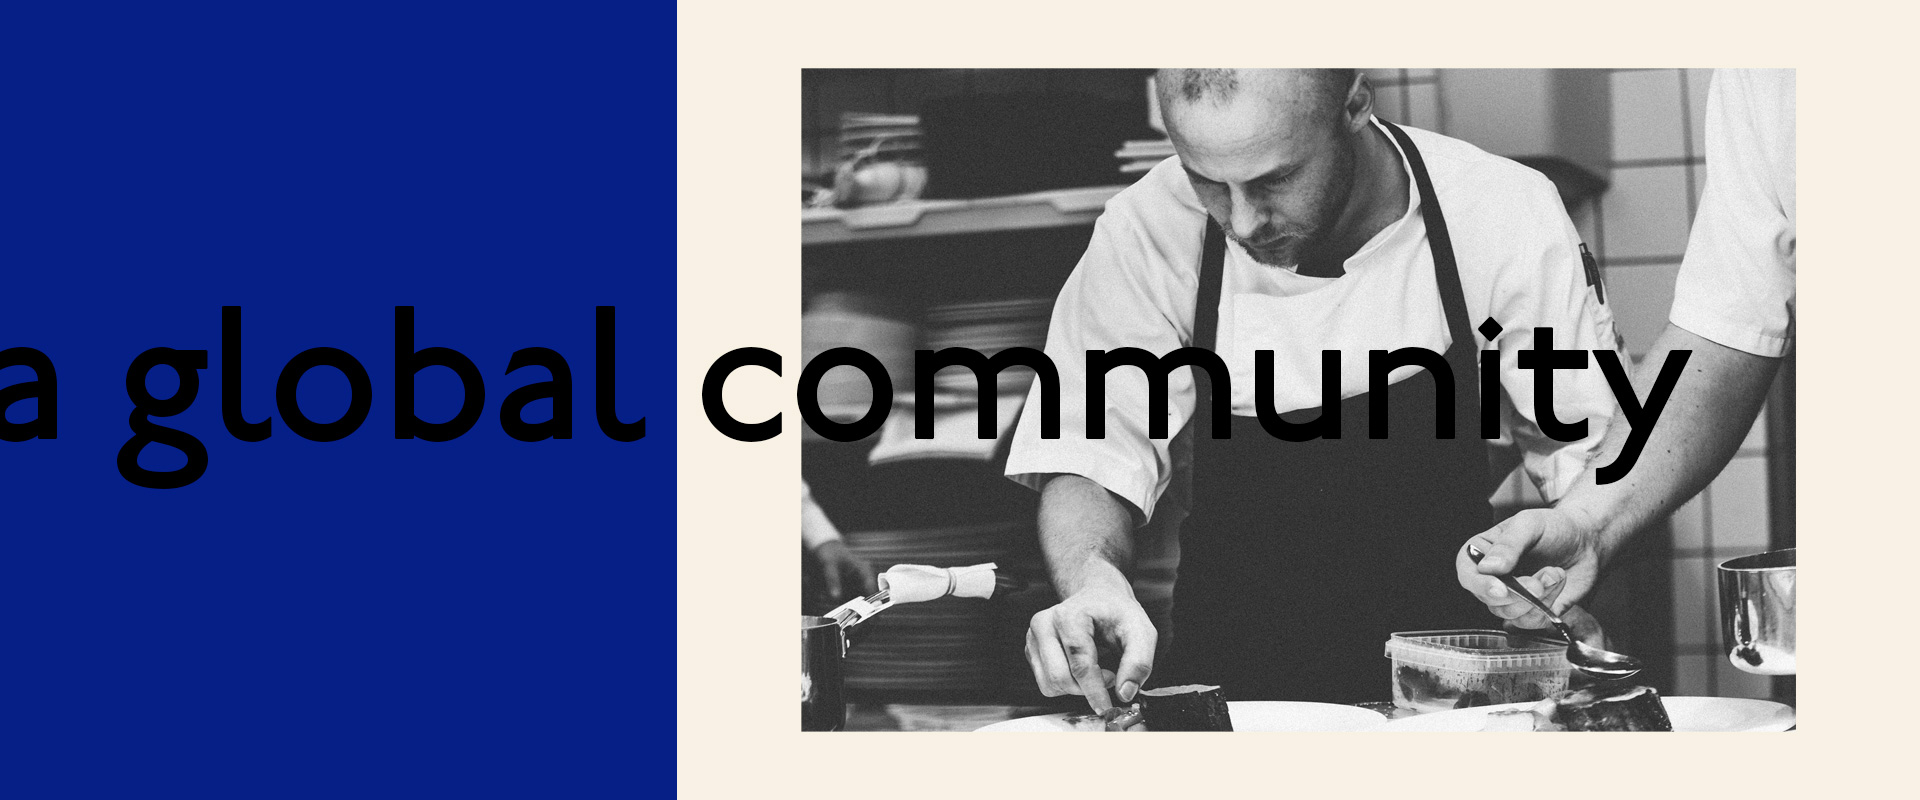 Cookbooth: the foodie community